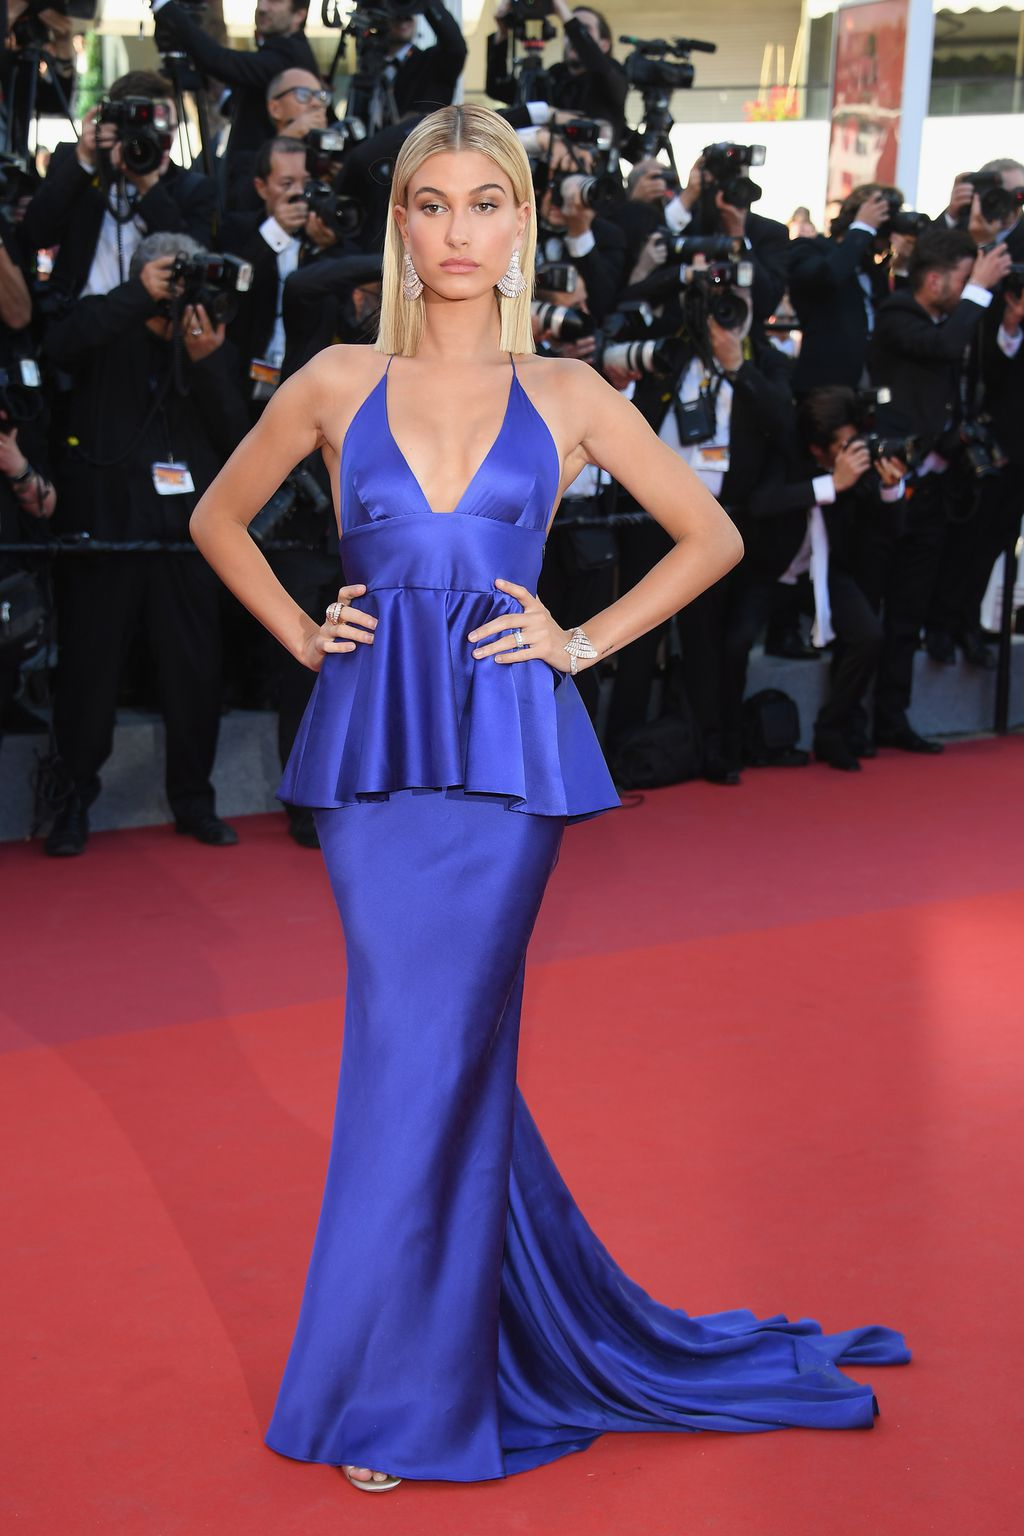 Hailey Baldwin in 2017 Cannes Film Festival 2017 red carpet